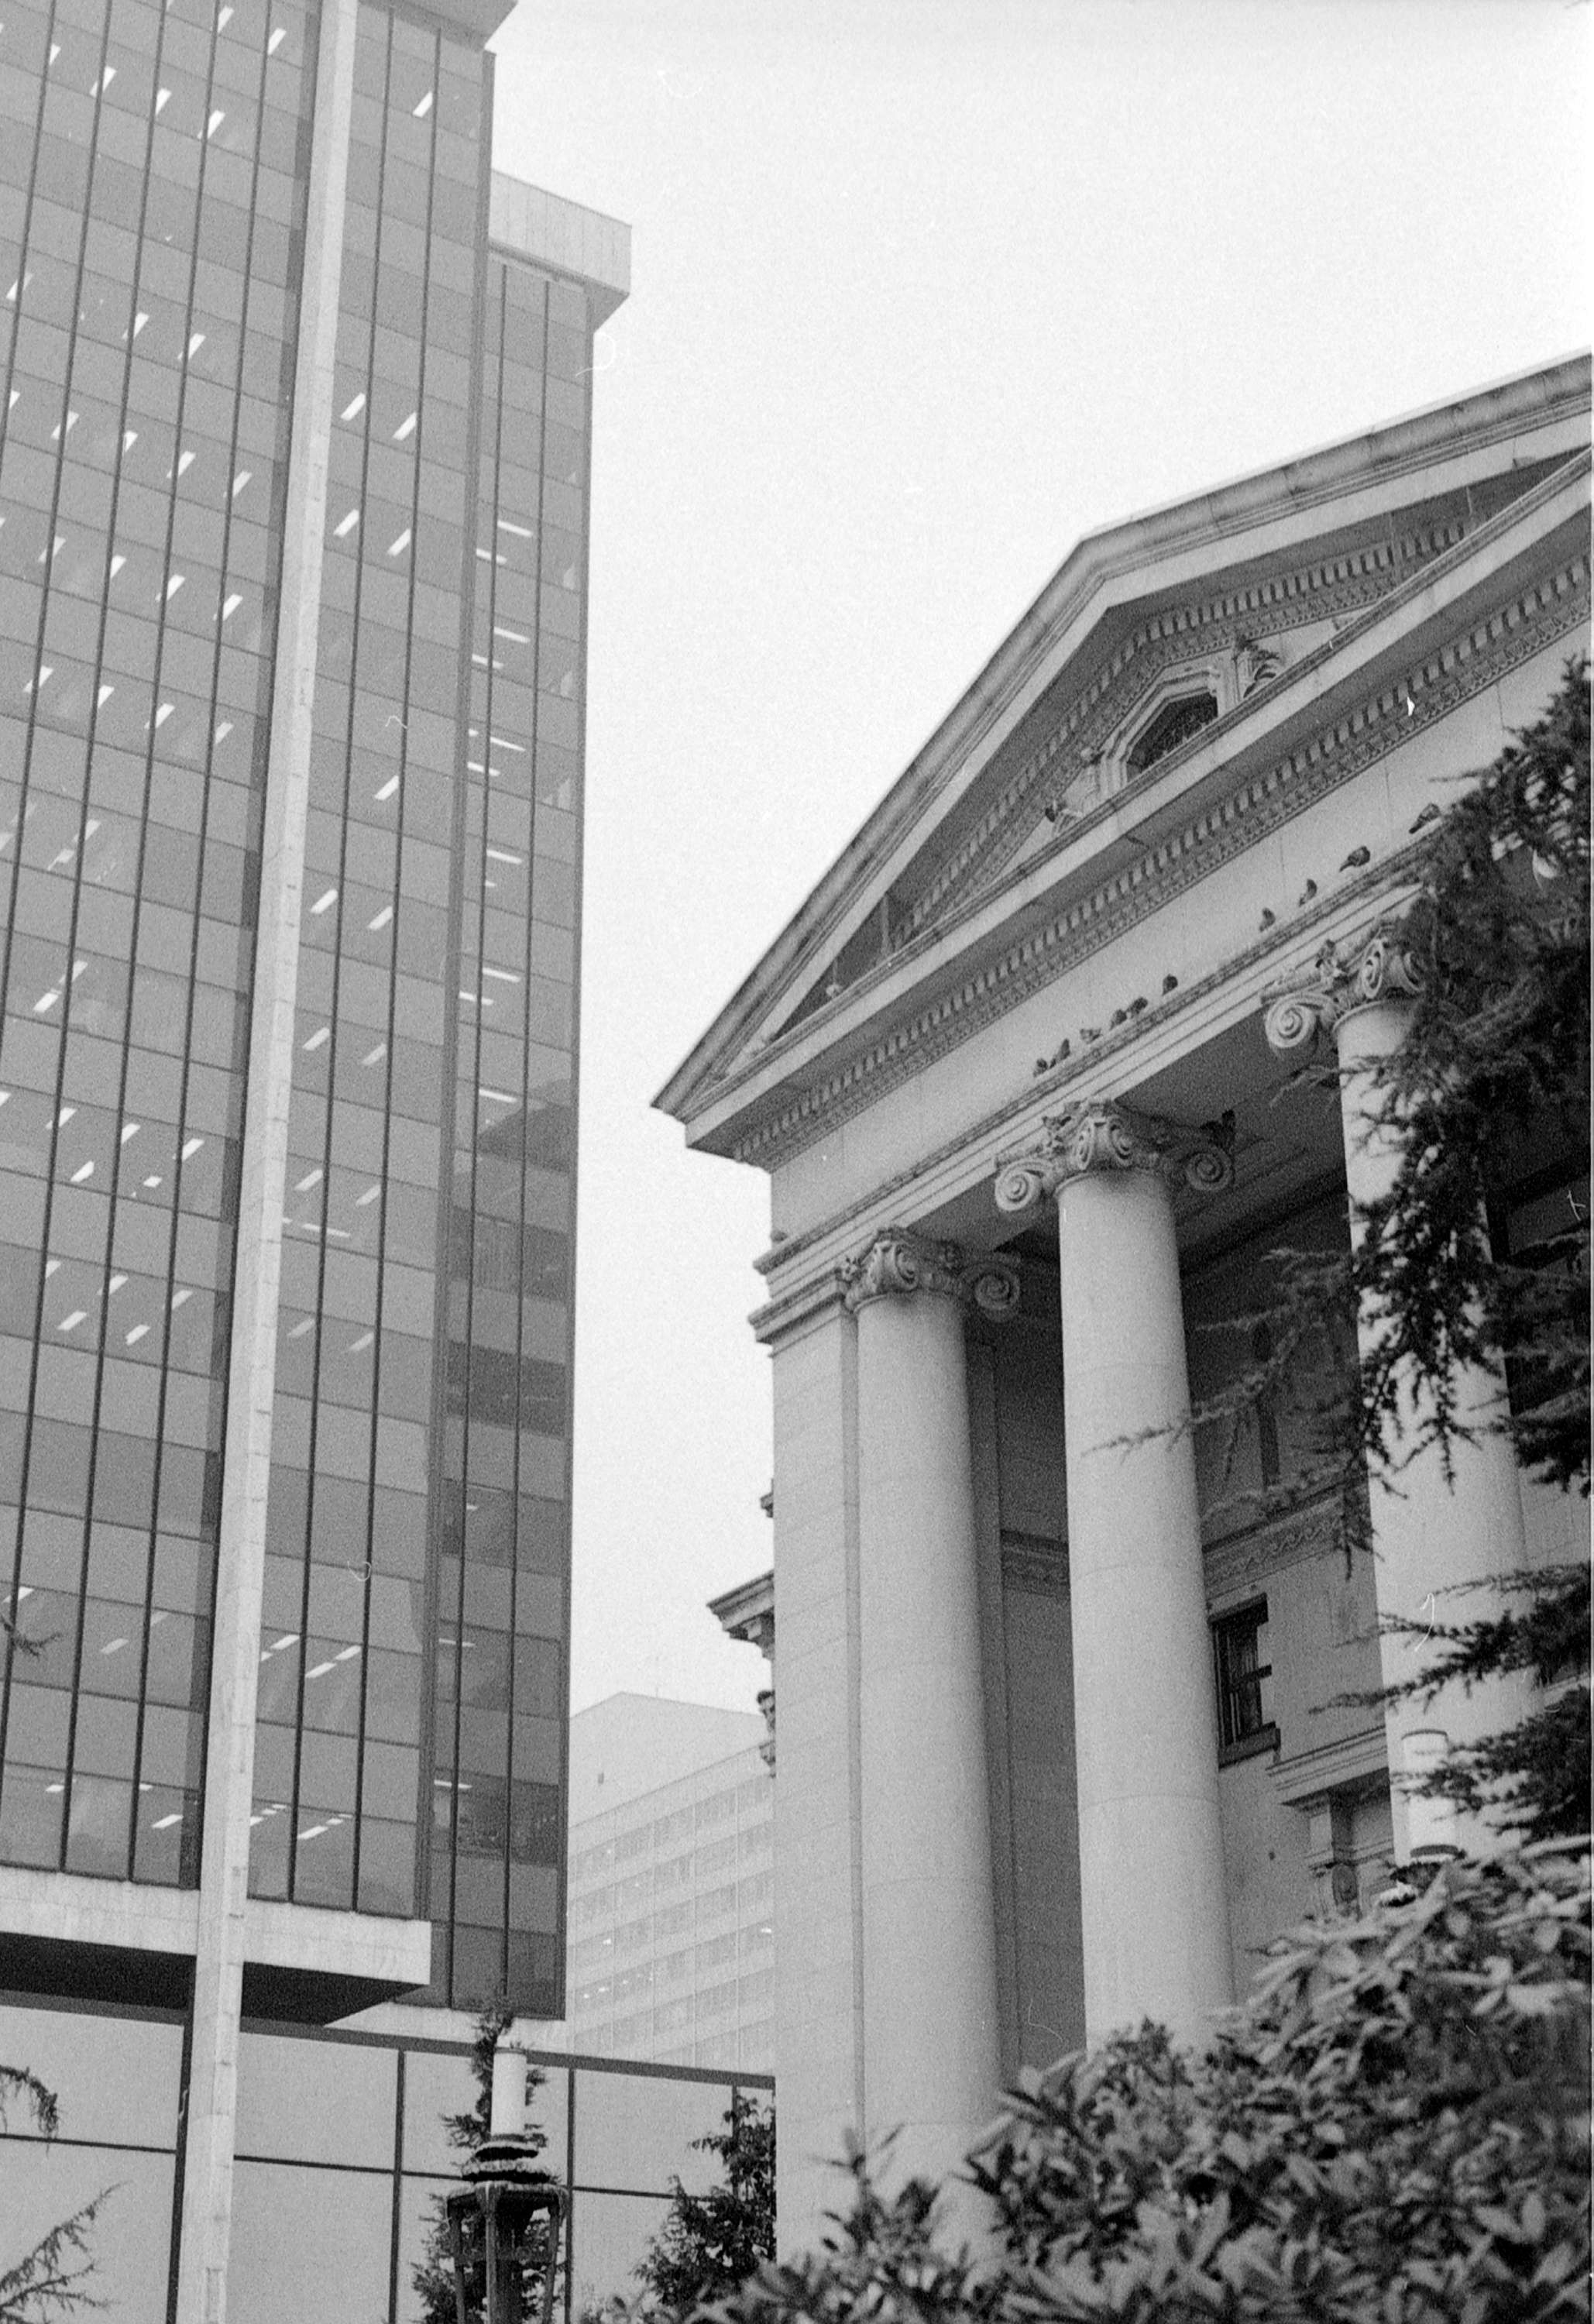 The columns of the BC courthouse in Vancouver in the 1970s (Vancouver Archives)